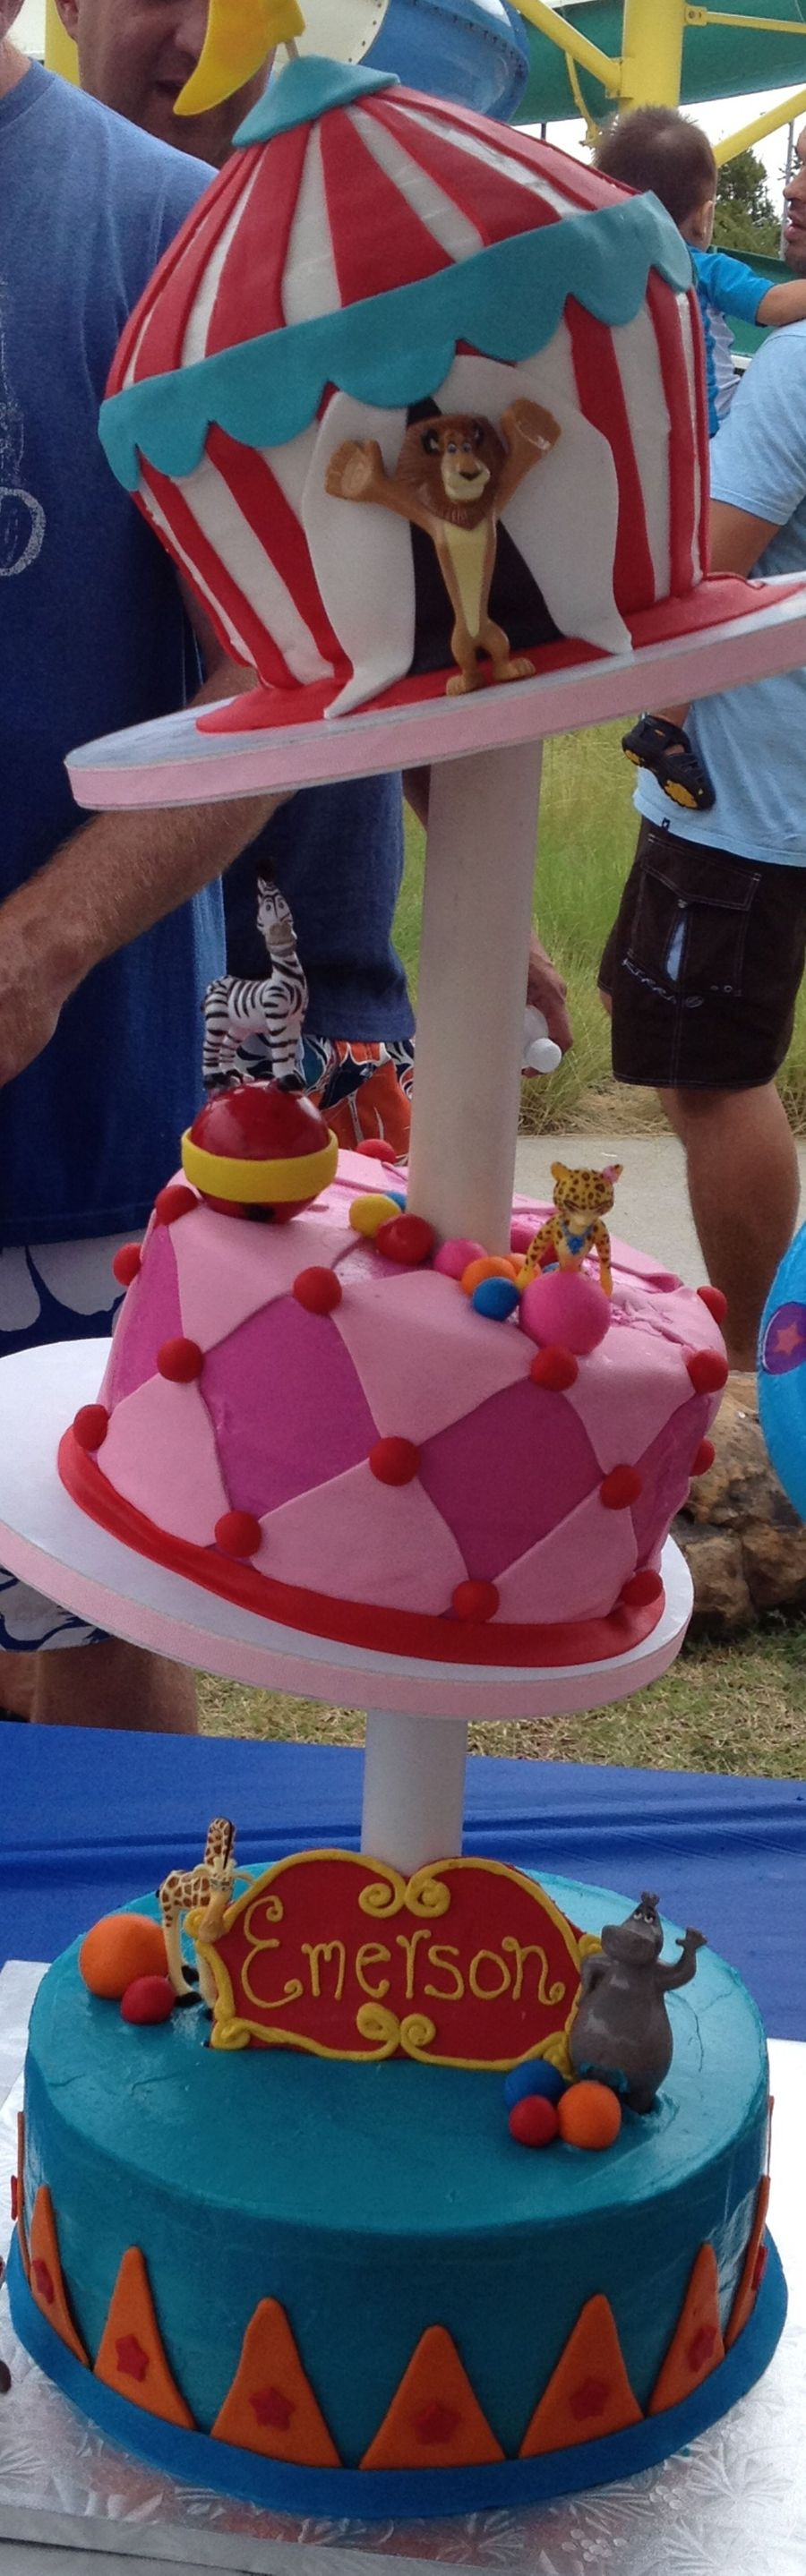 Topsy Turvy Madagascar Circus Cake on Cake Central